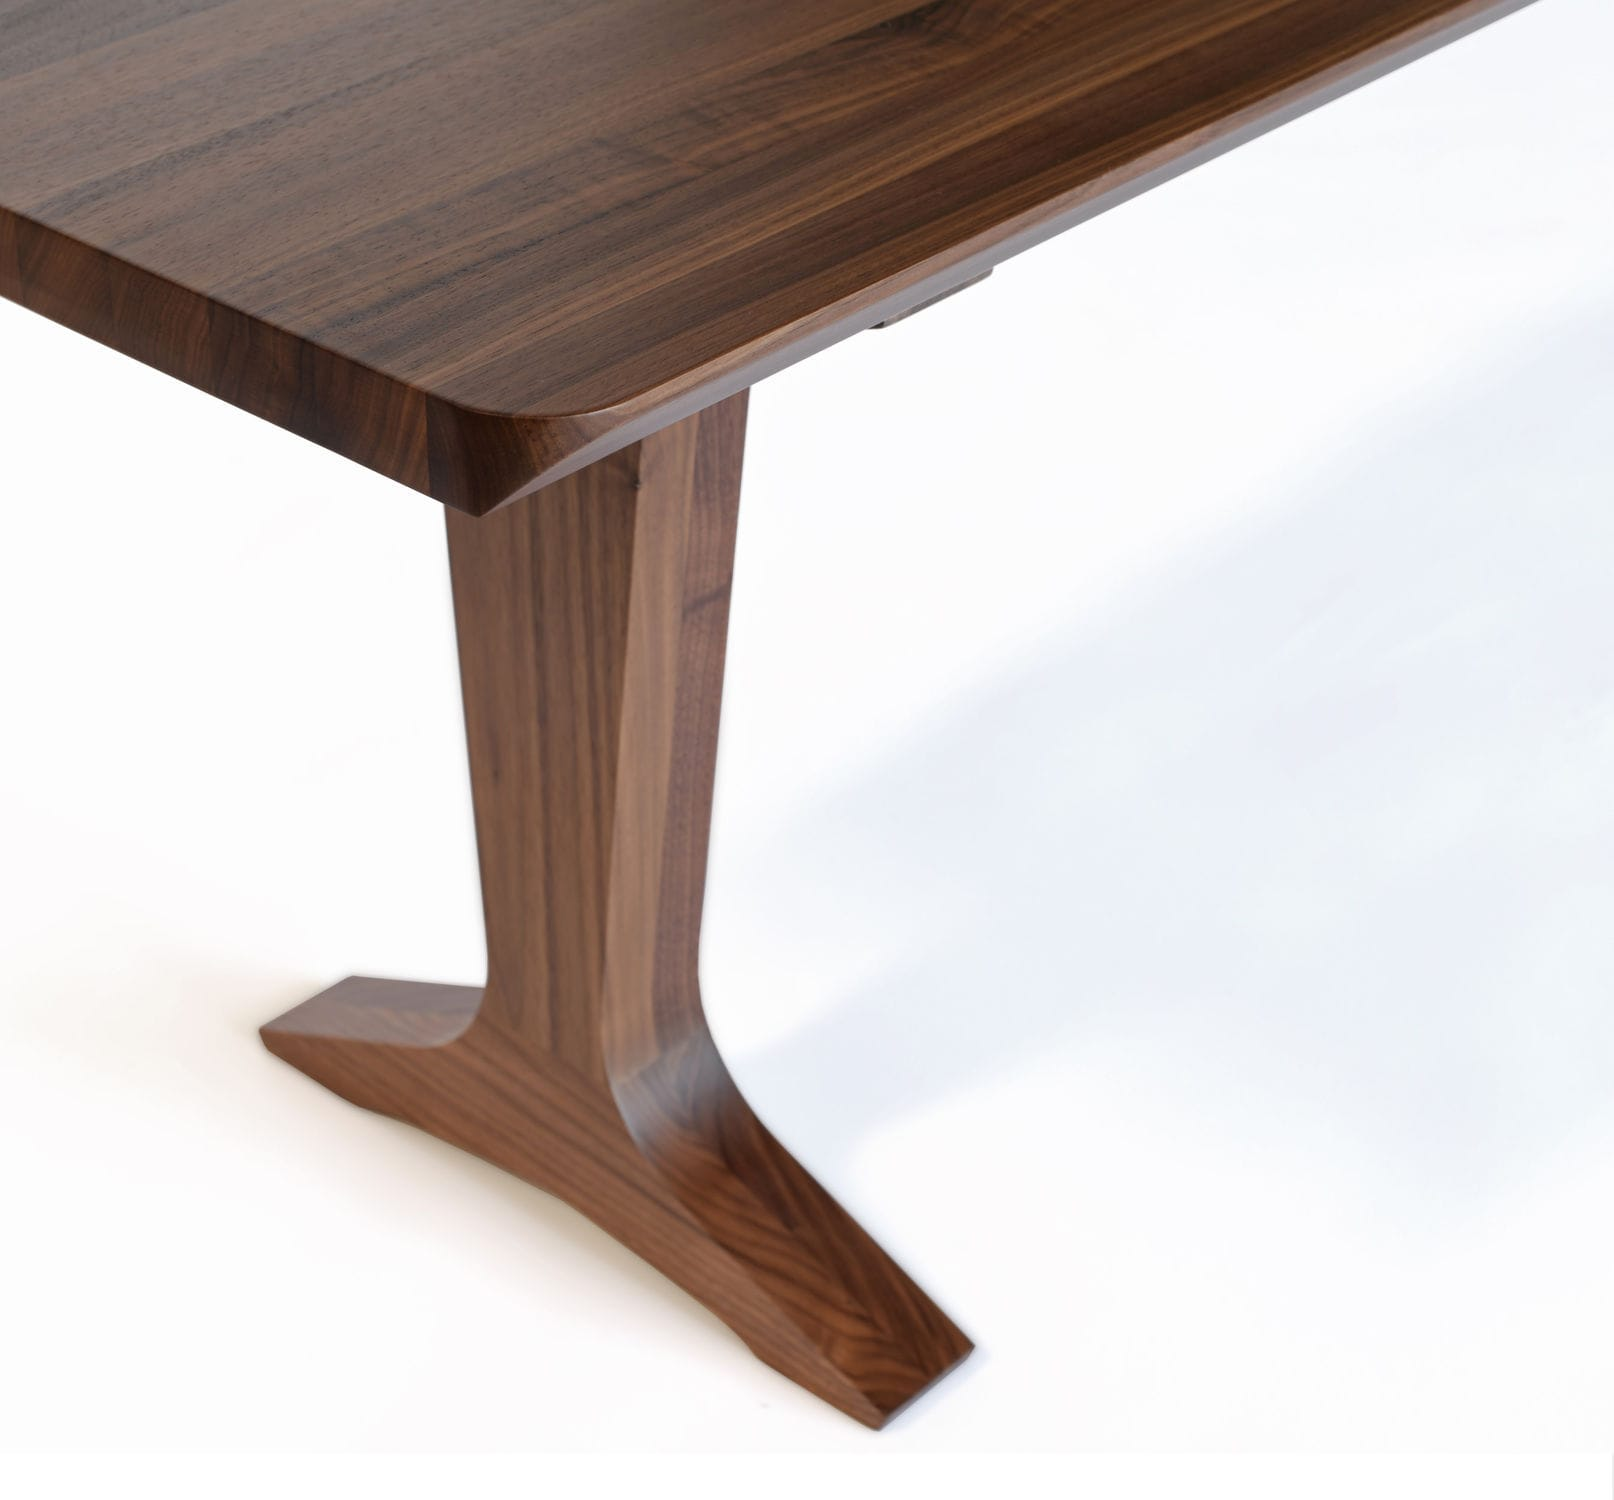 Contemporary dining table wooden rectangular contract